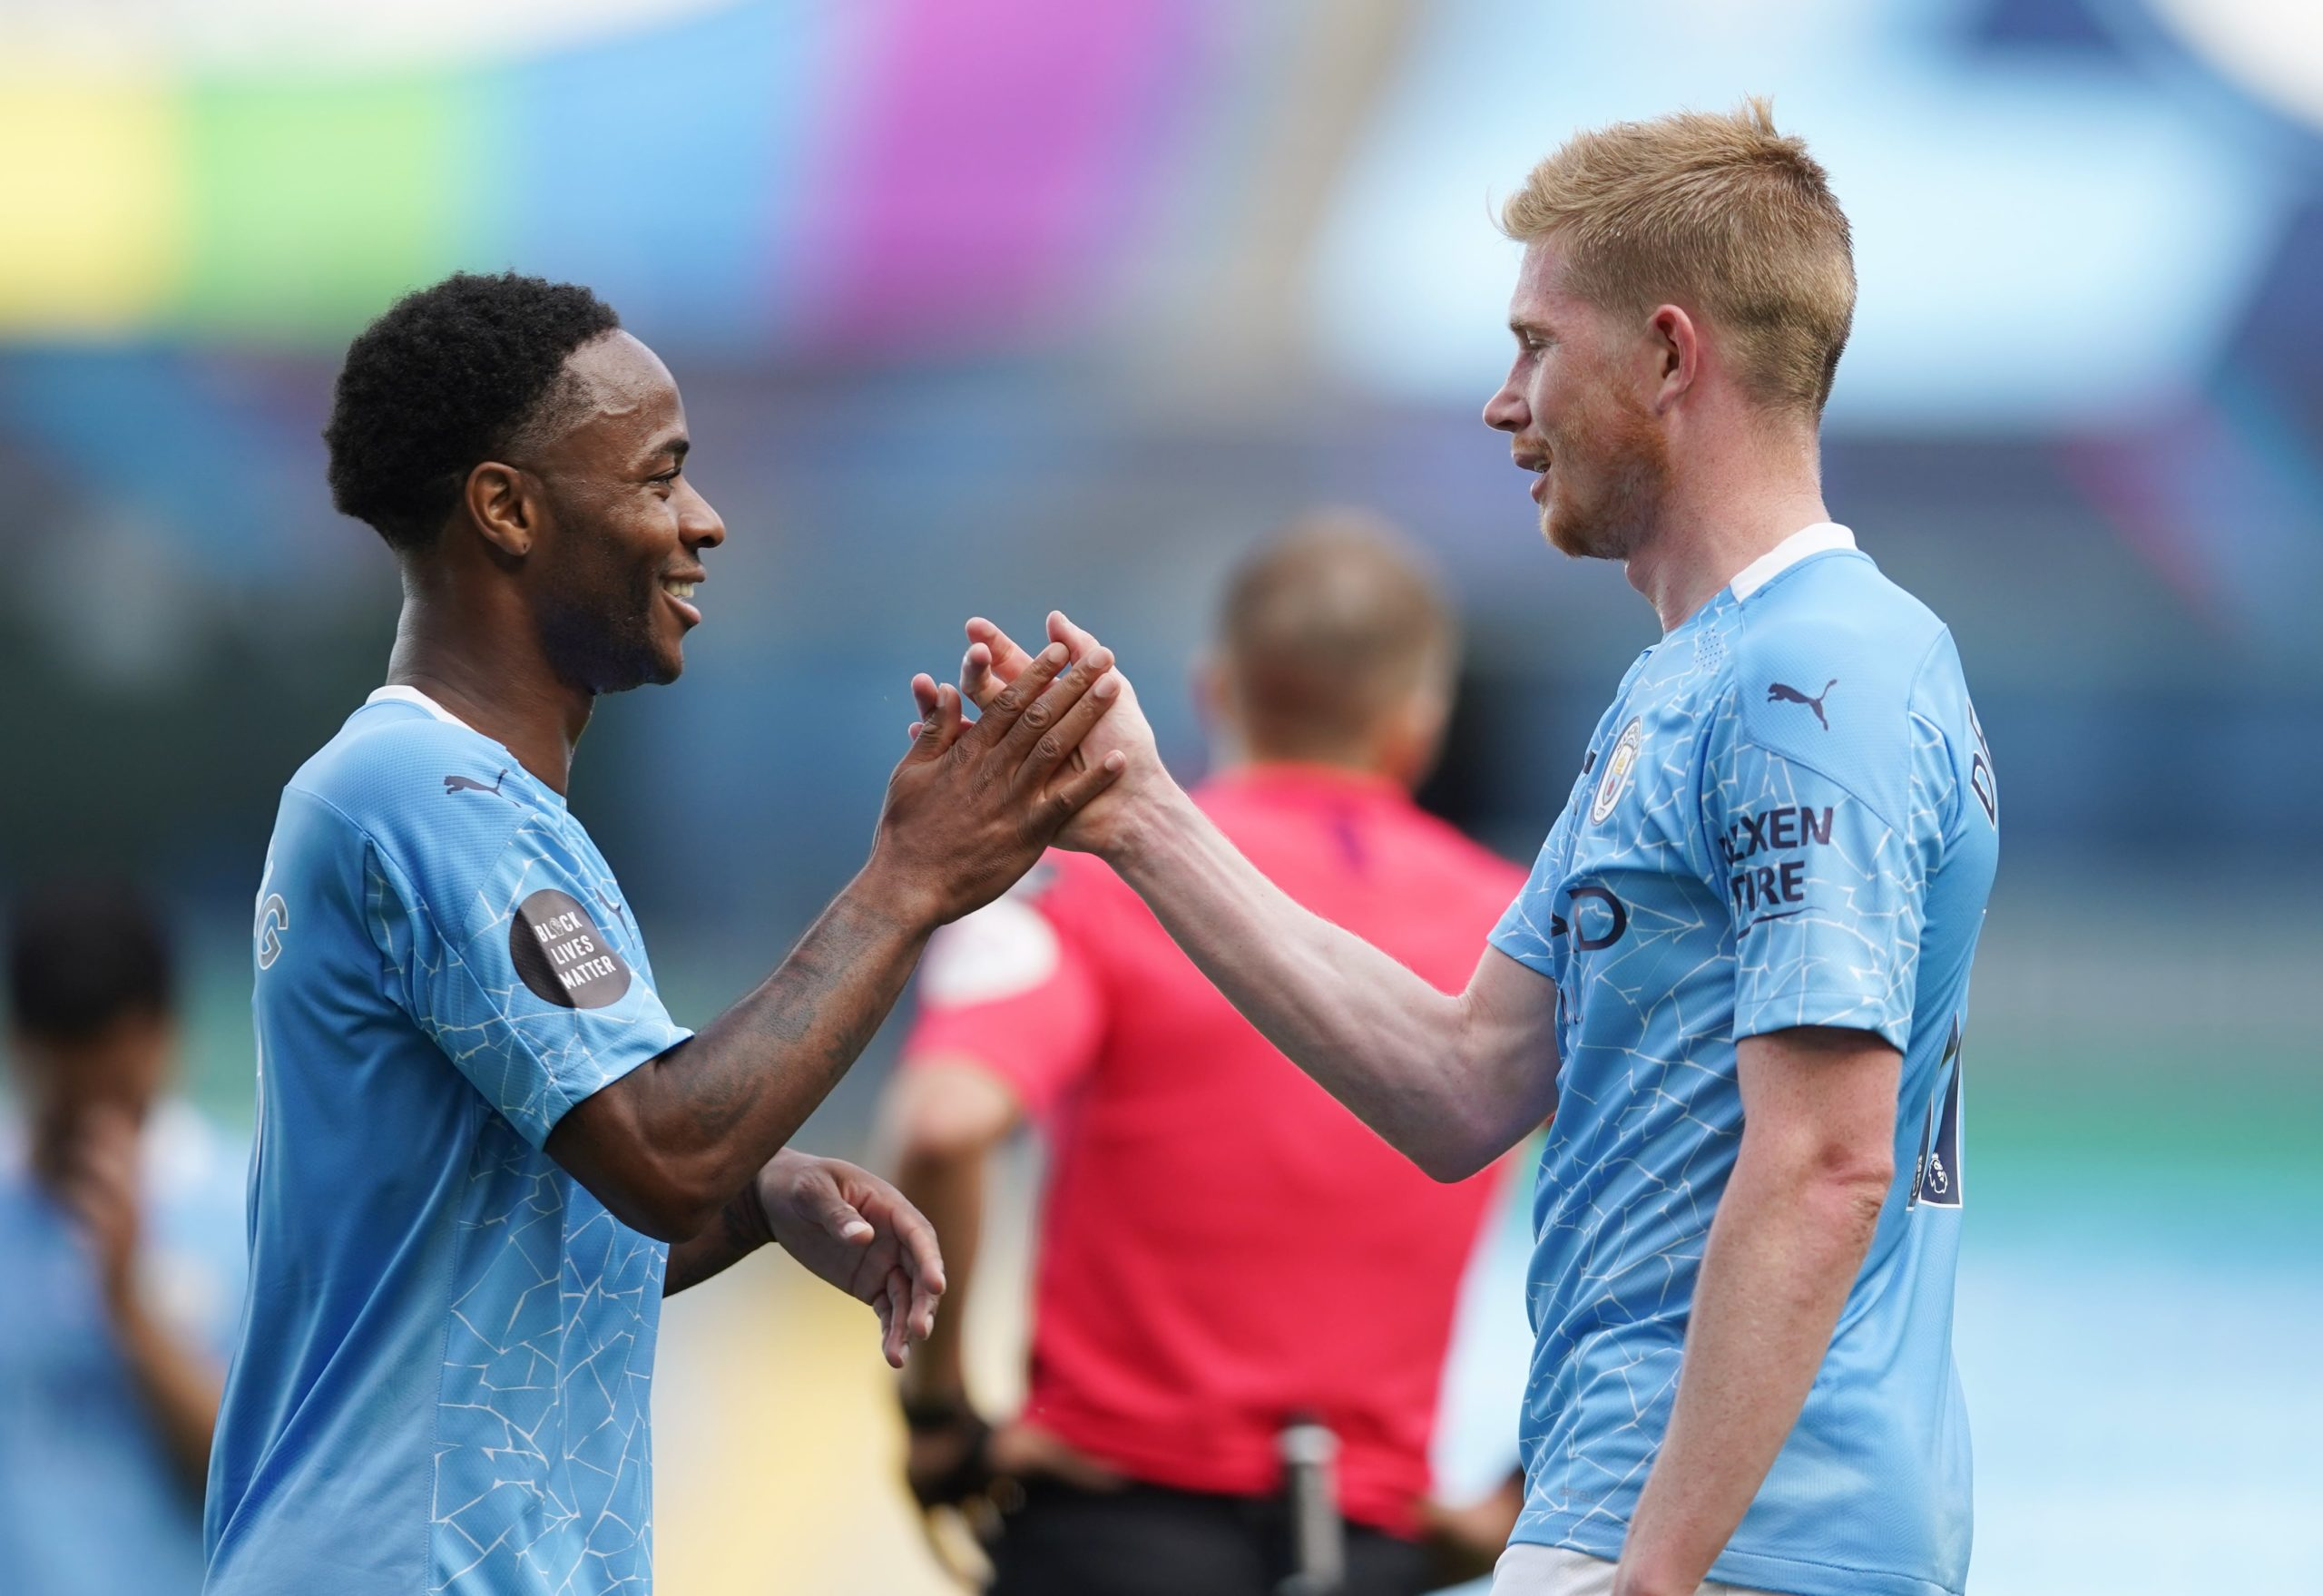 How De Bruyne and Sterling compare as FPL assets for 2020/21?